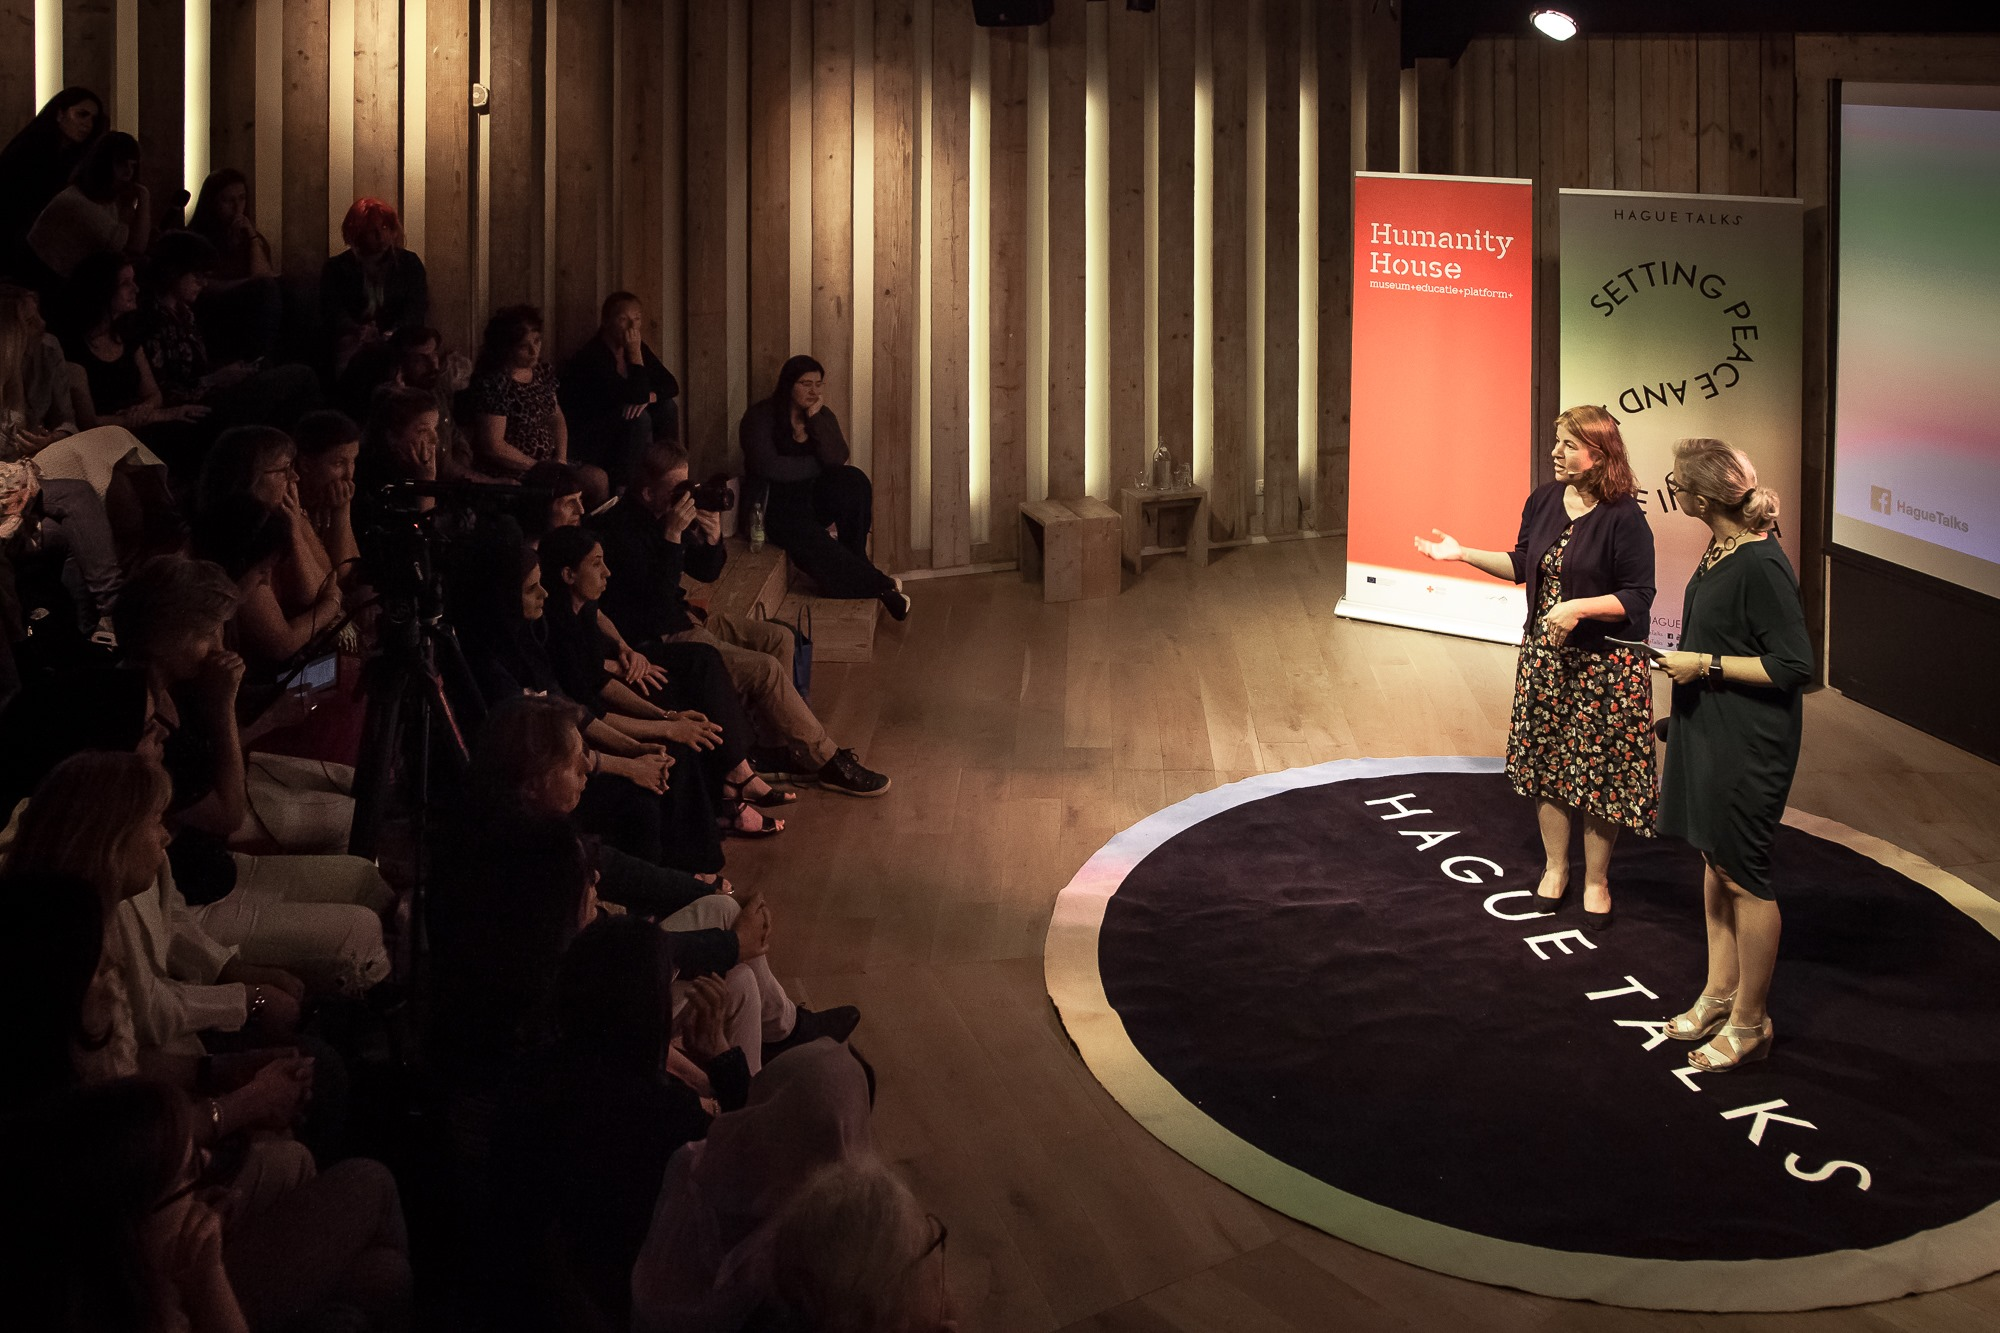 Behar Ali at HagueTalks. Five years on: How are women in the Yazidi community rebuilding after IS?'